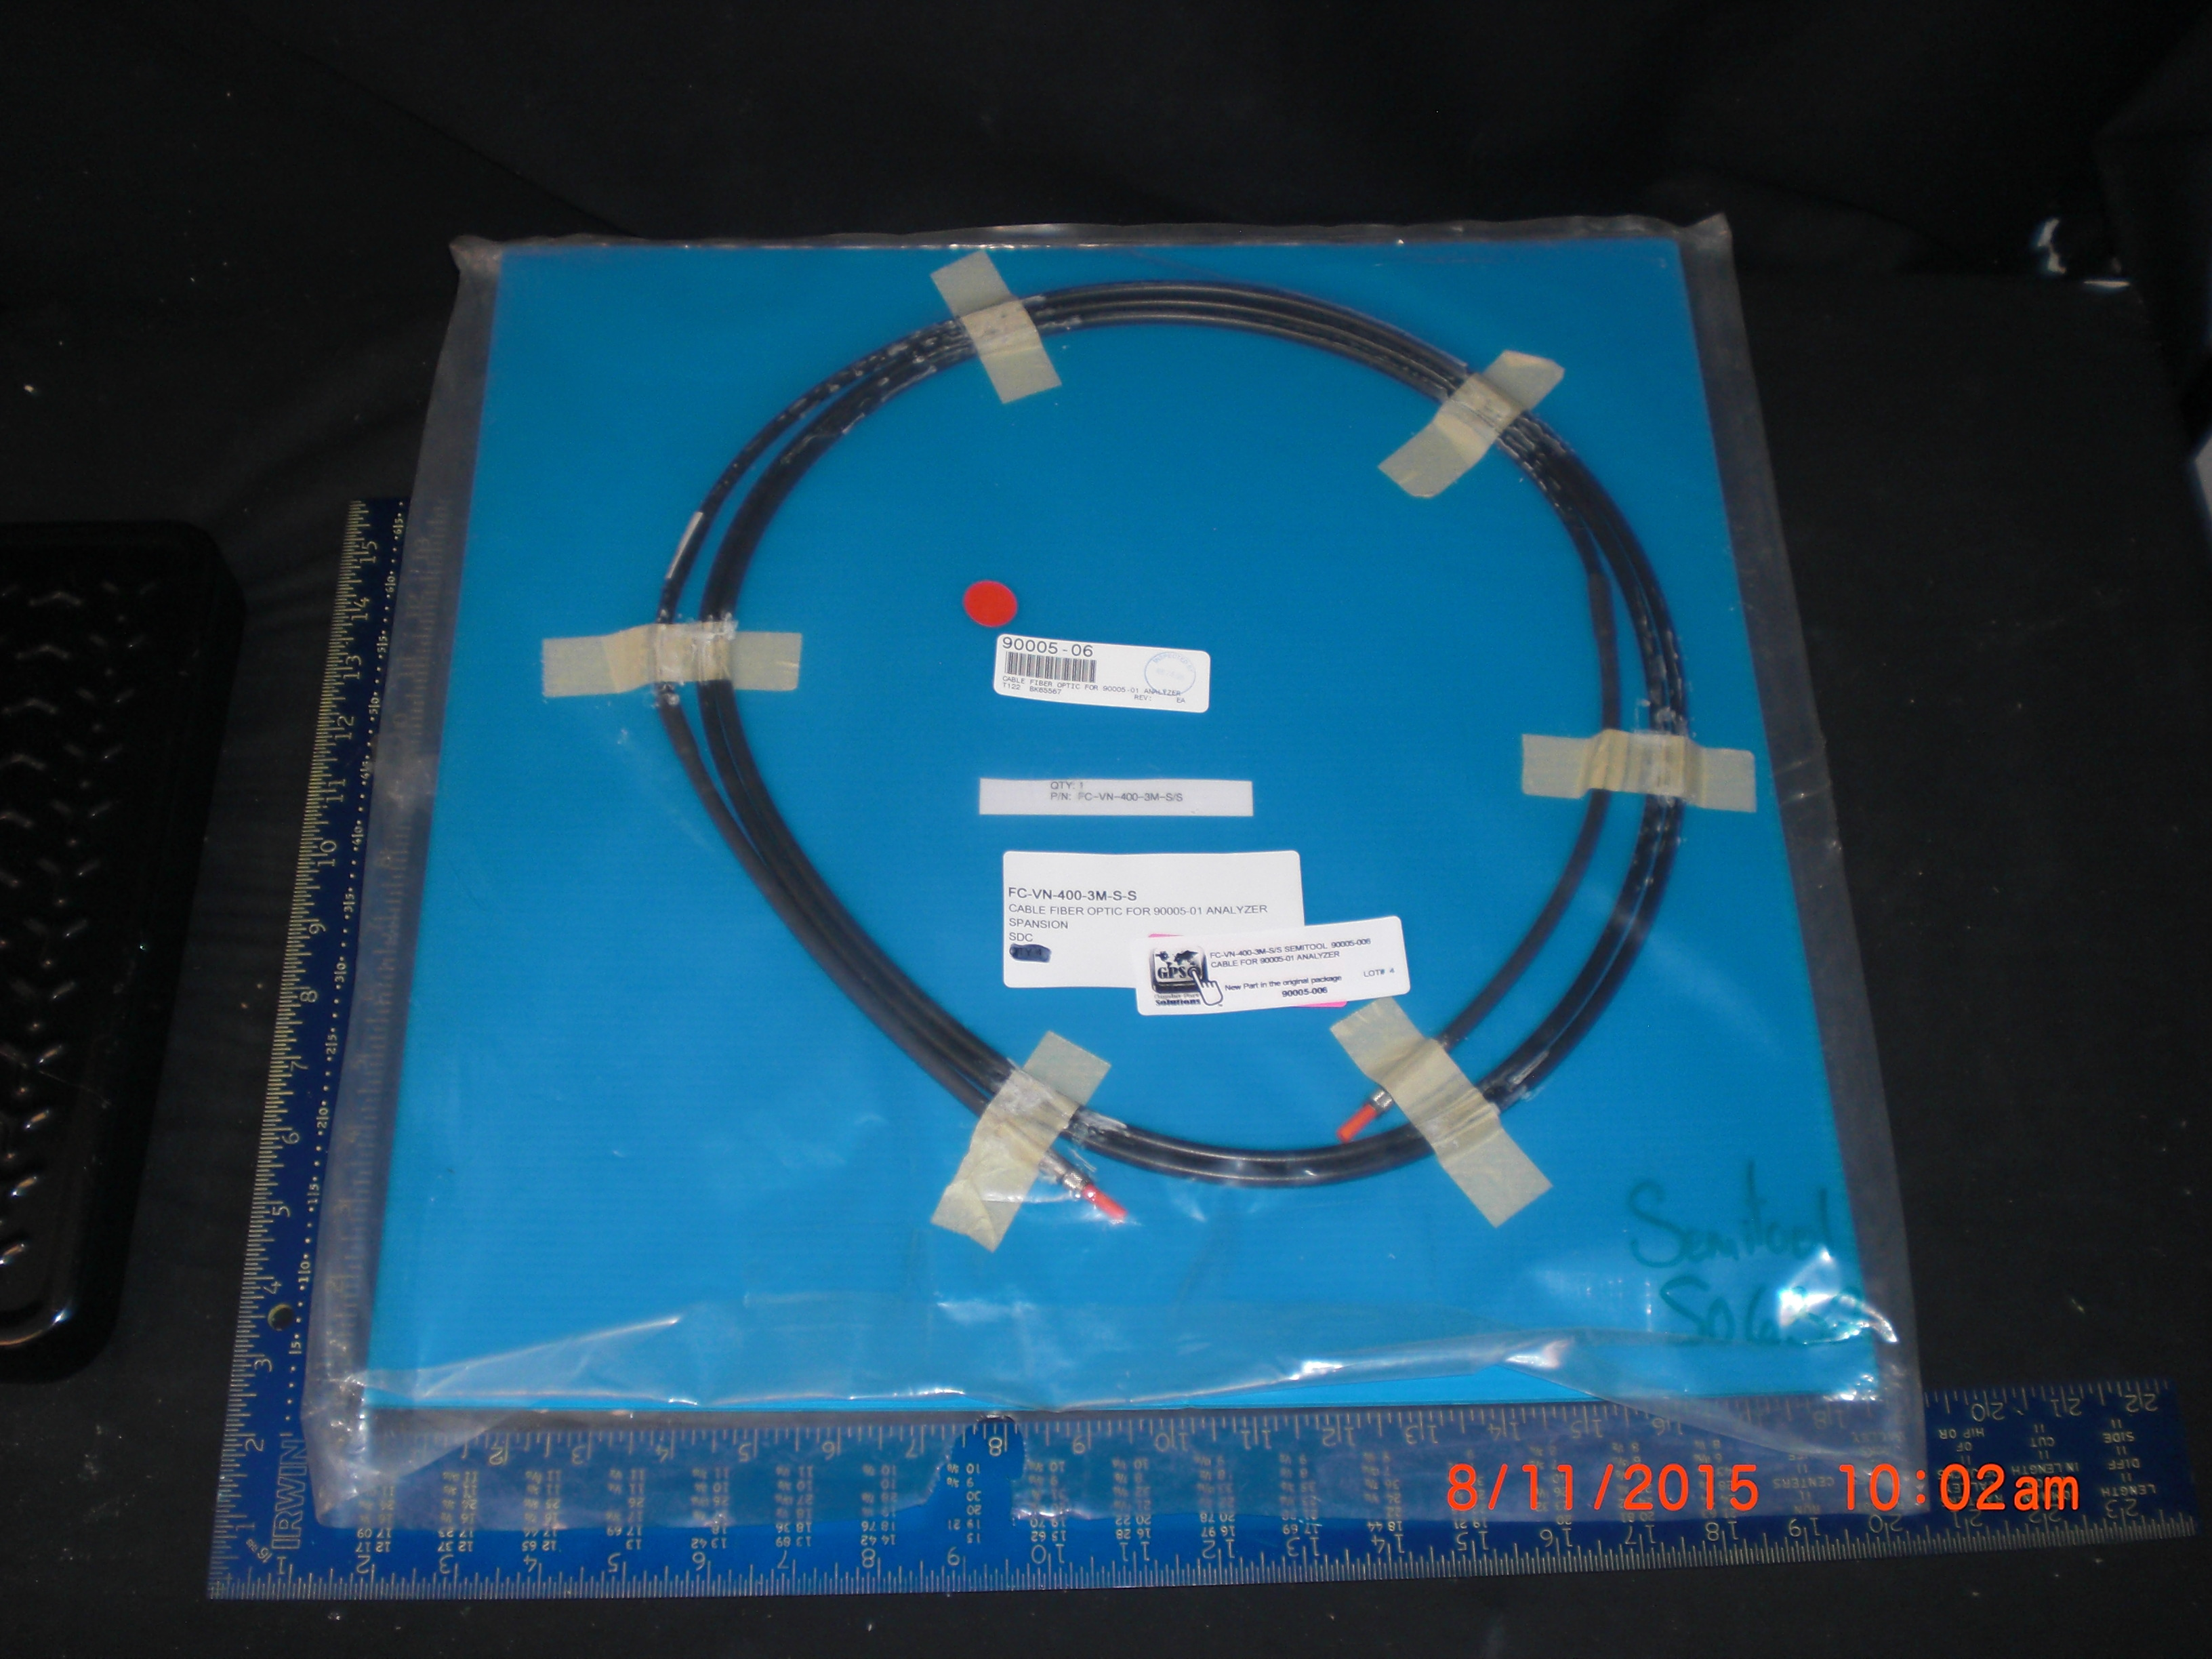 Fiber Optics Amphenol FC-VN-400-3M-S/S SEMITOOL  90005-006 Cable for 90005-01 Analyzer